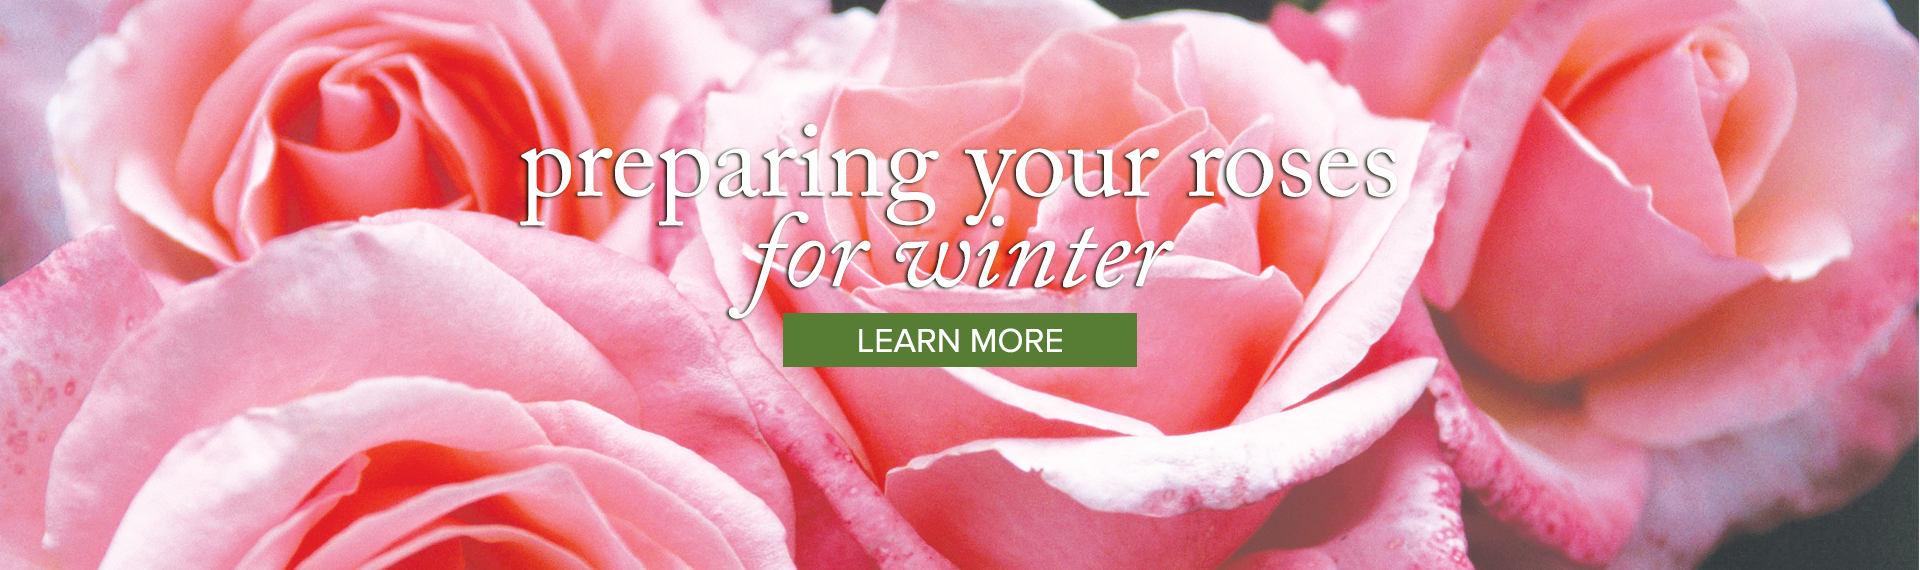 roses_LEARN